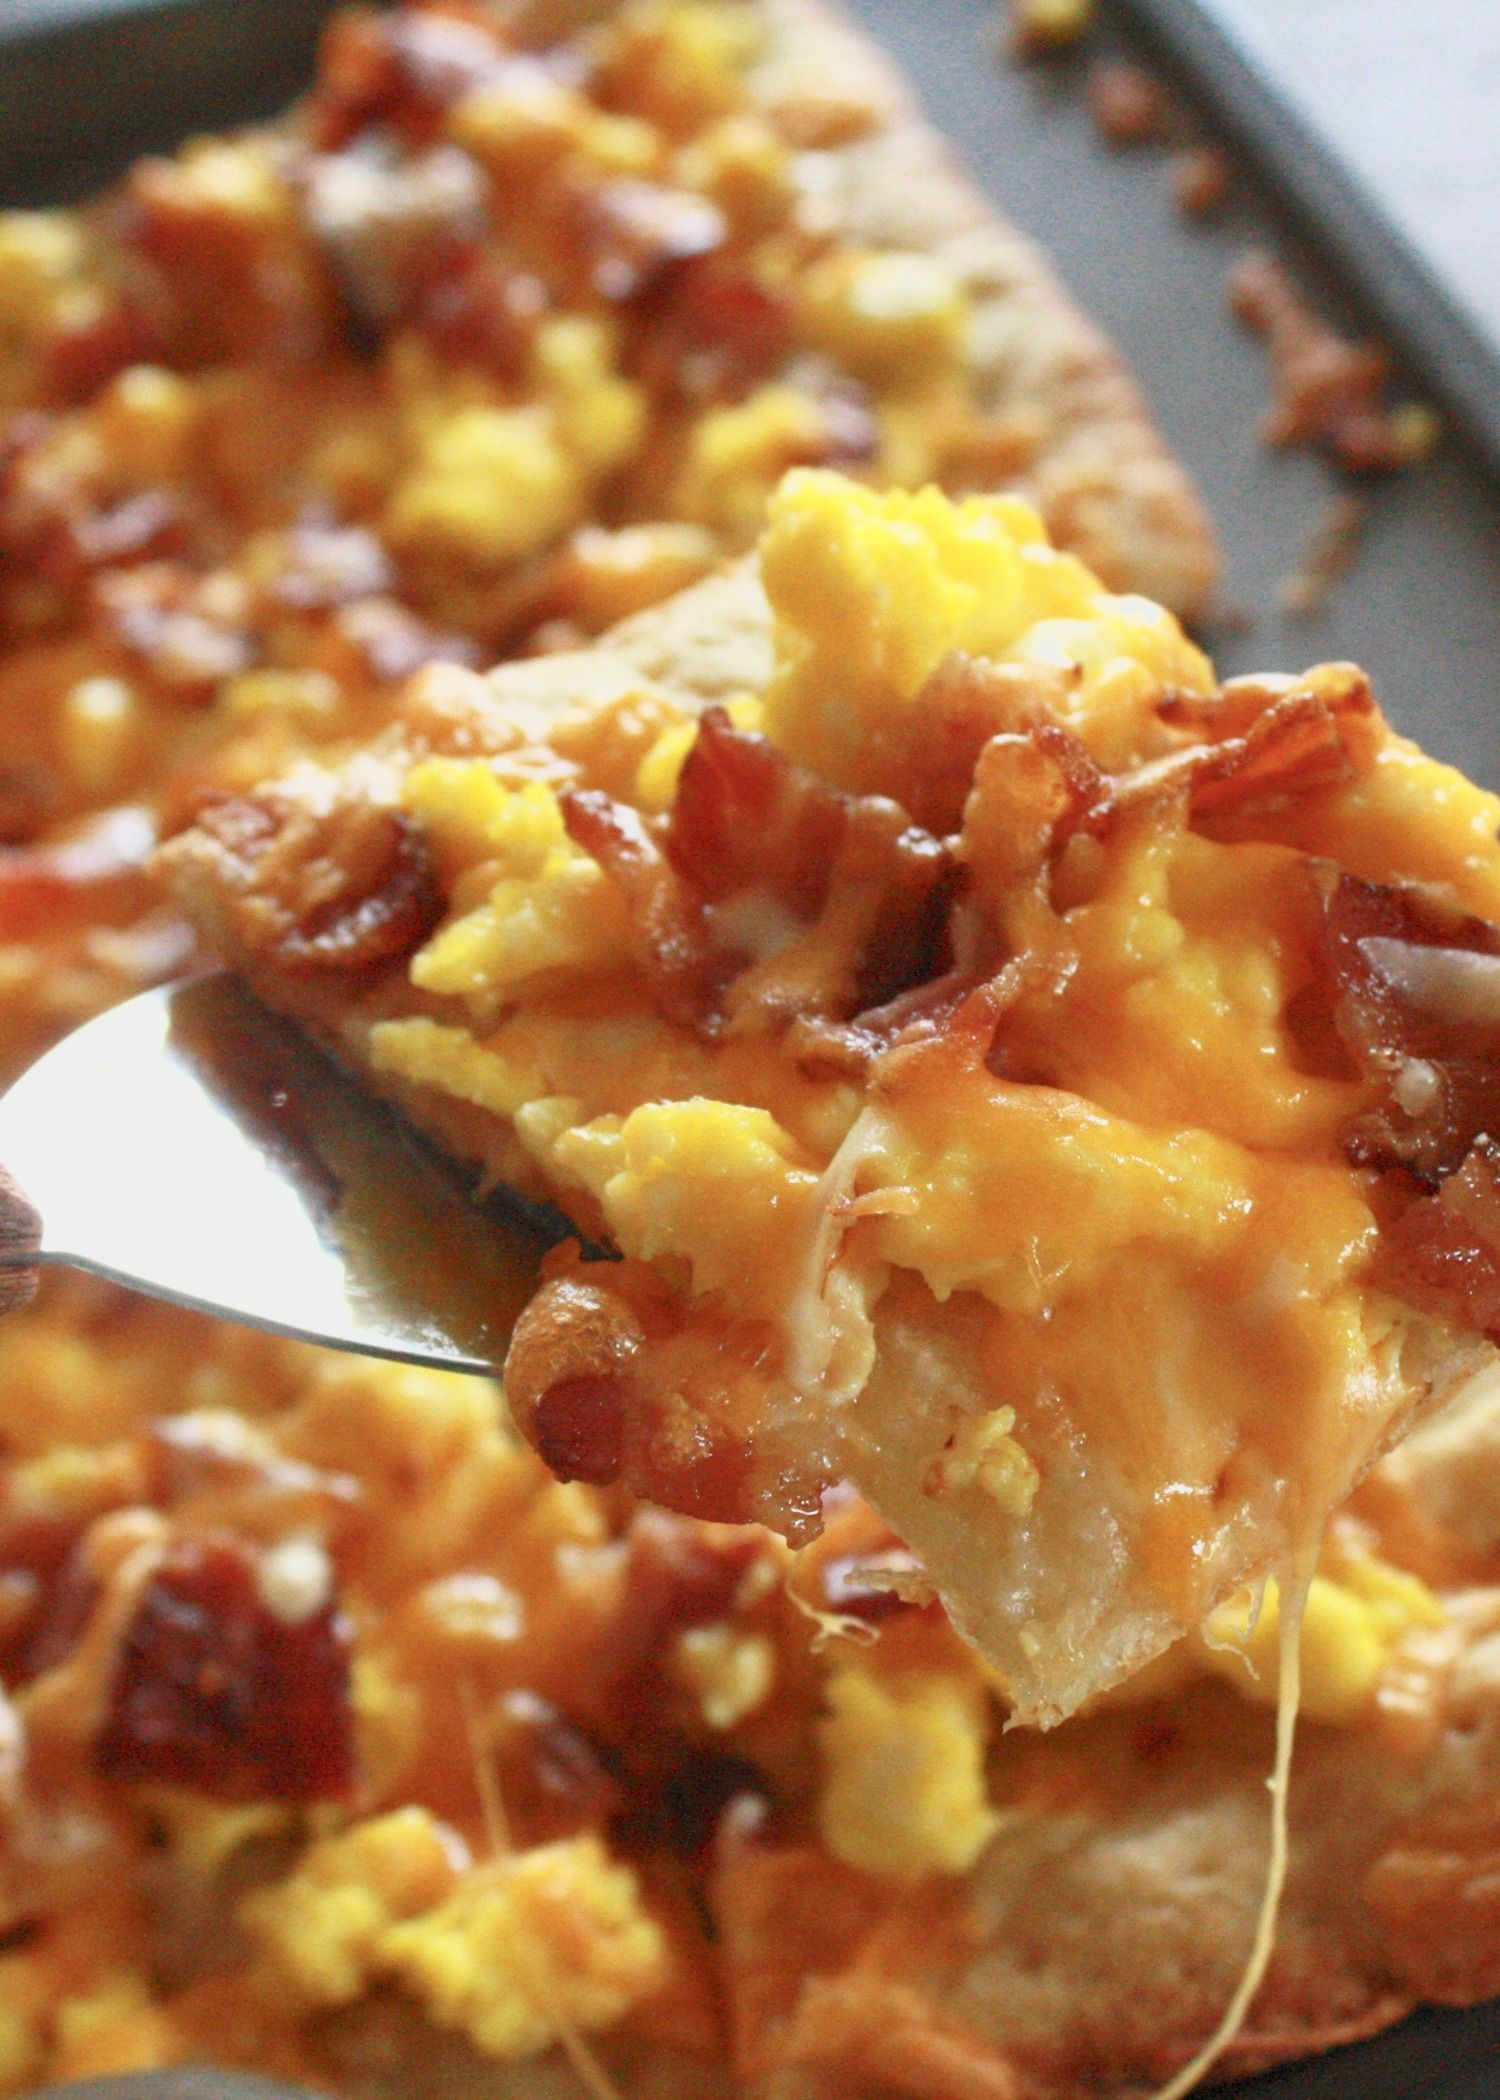 Looking To Nail Down Some Easy Breakfast RecipesQuick Simple Breakfasts Like This Pizza Are The Way Go